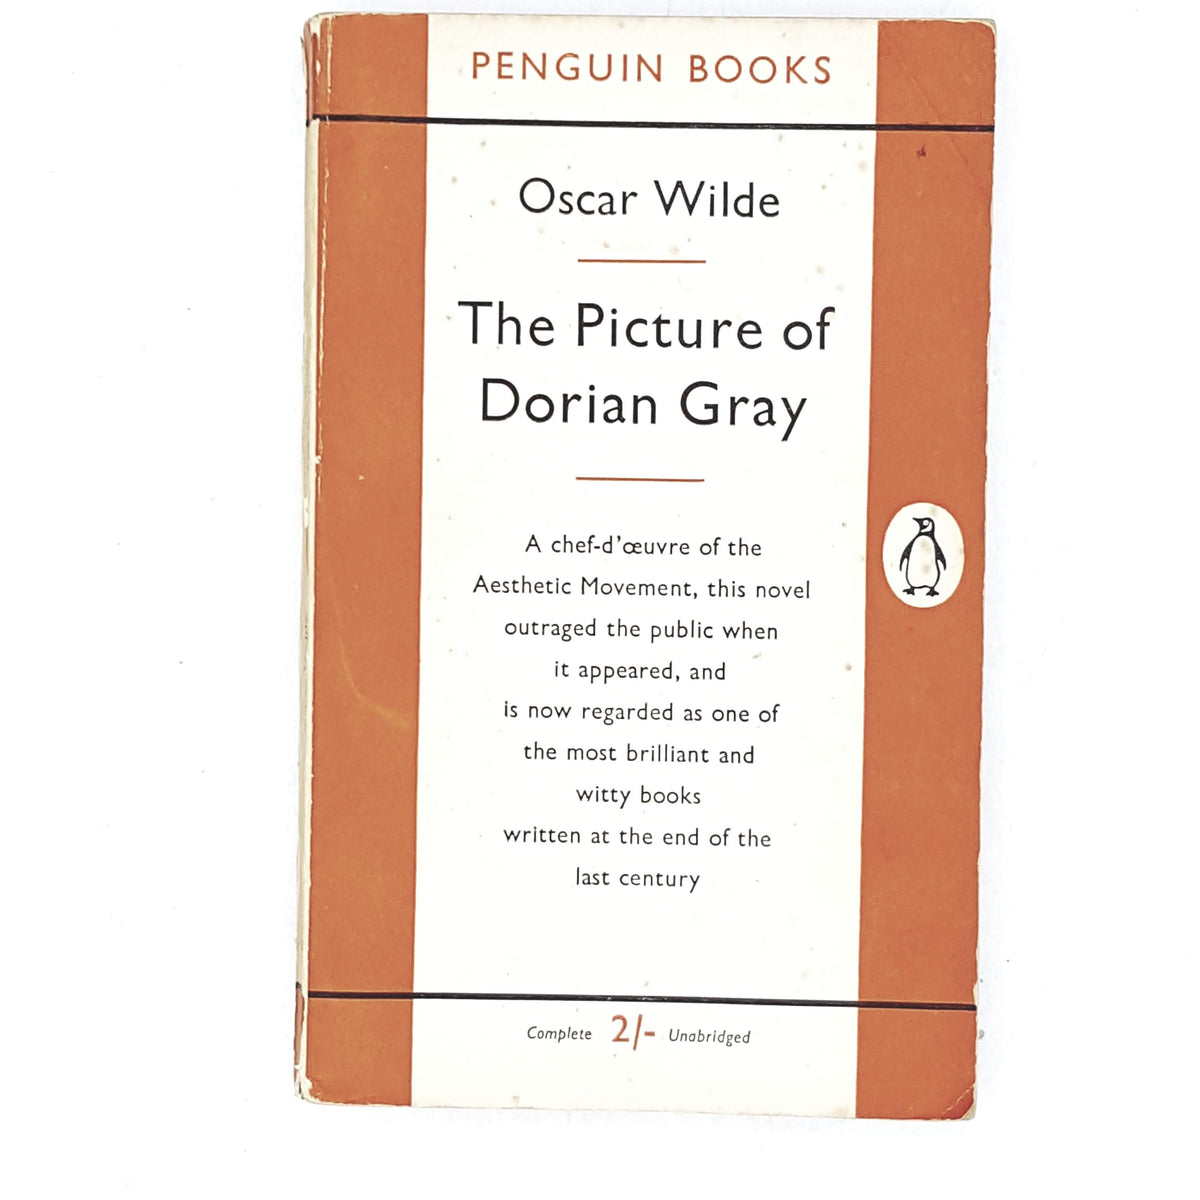 vintage-penguin-picture-of-dorian-gray-by-oscar-wilde-1954-country-house-library